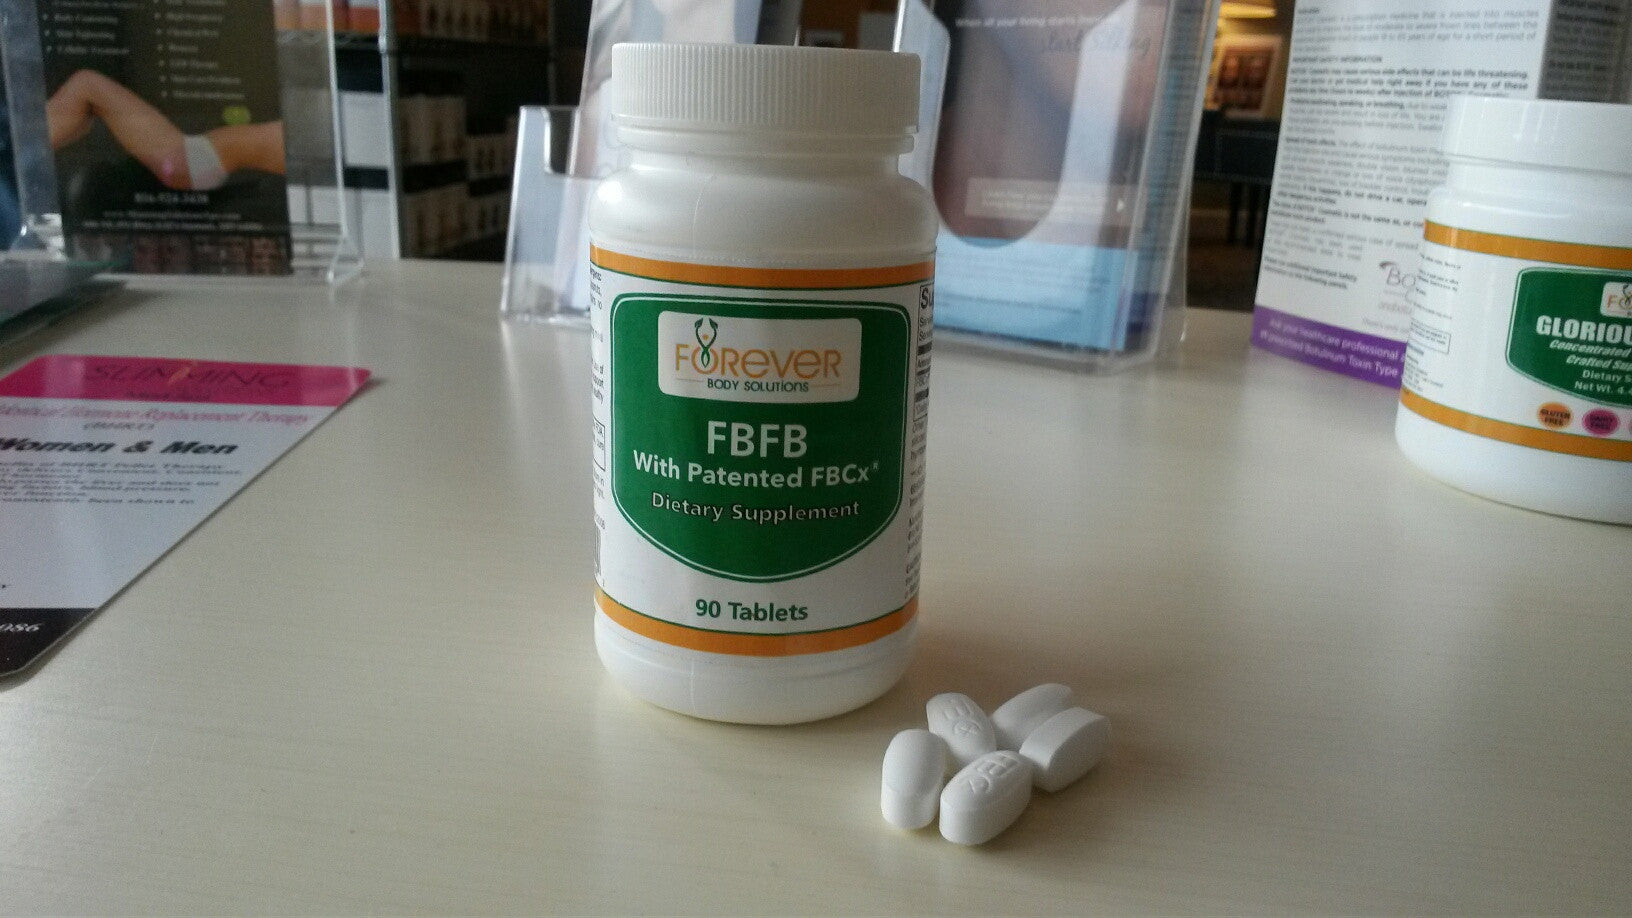 FBFB helps stops fat and calories from being absorbed!